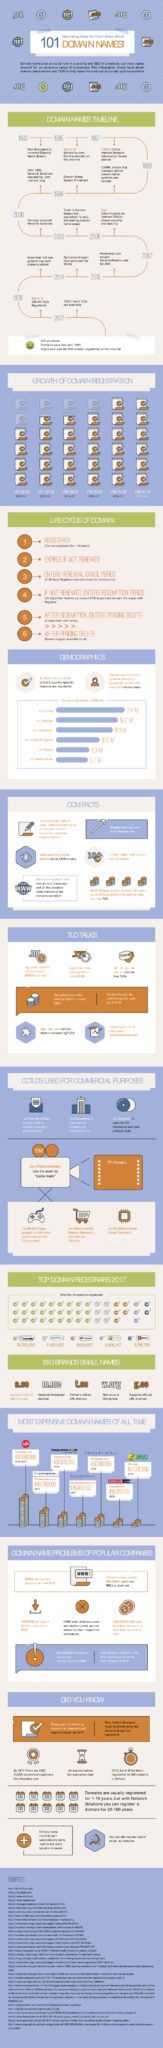 domain name infographic